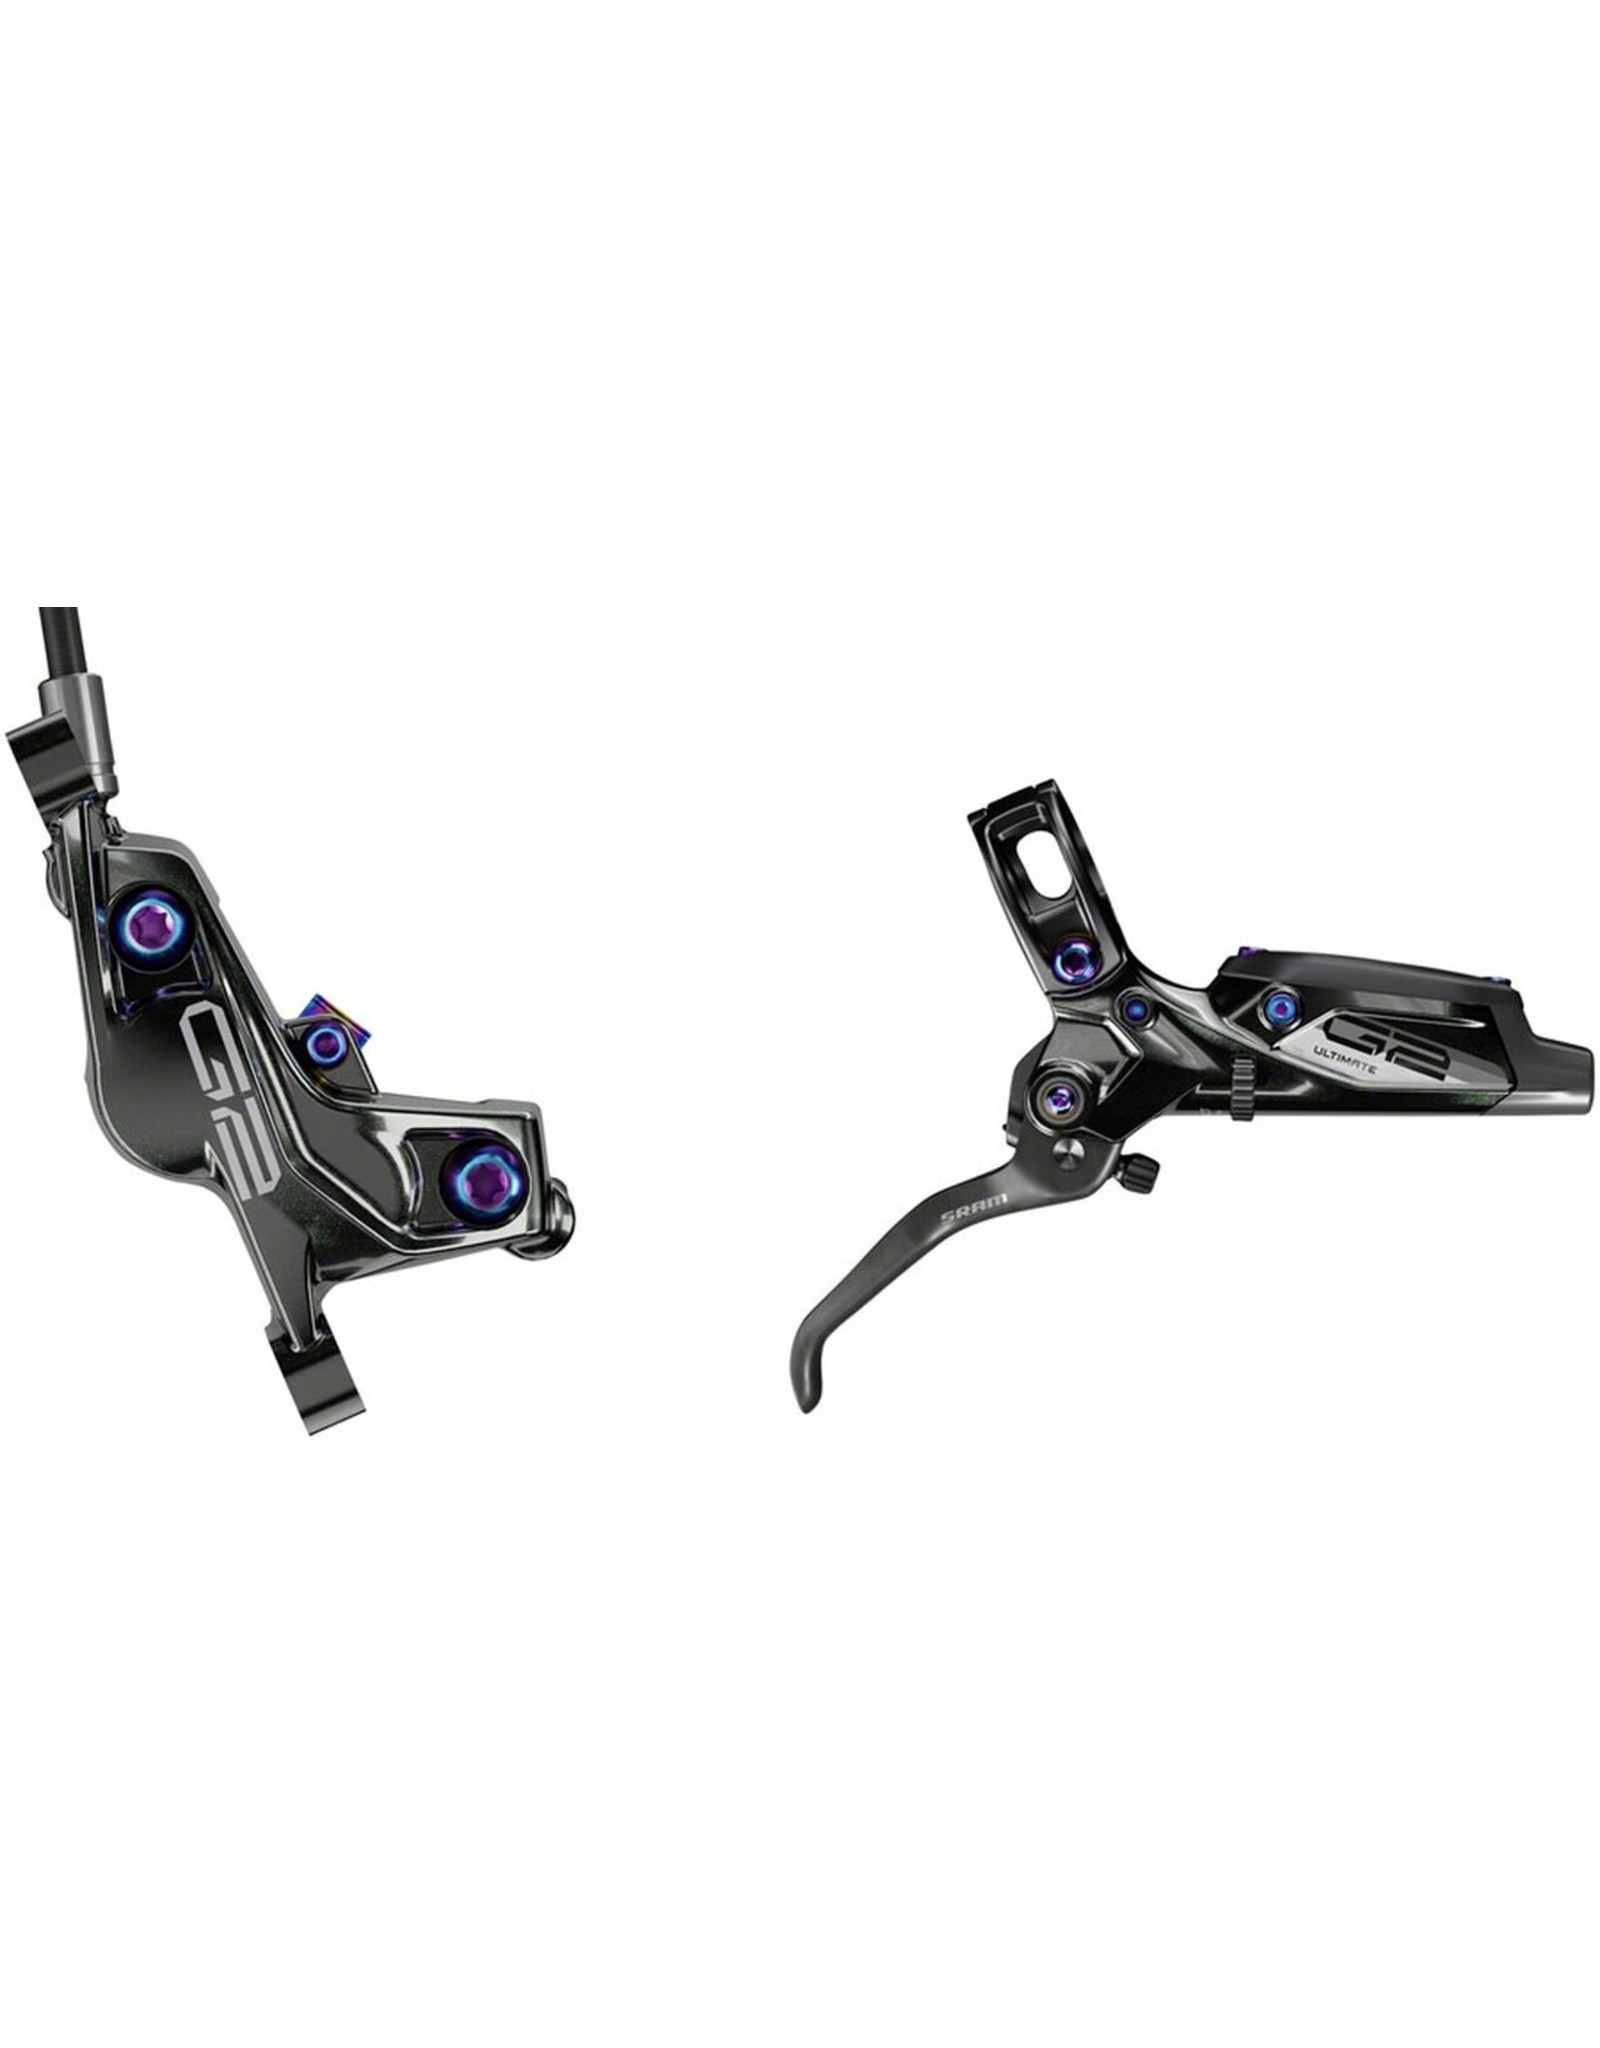 SRAM SRAM Code RSC Disc Brake and Lever - Front, Hydraulic, Post Mount, Black with Rainbow Hardware, A1